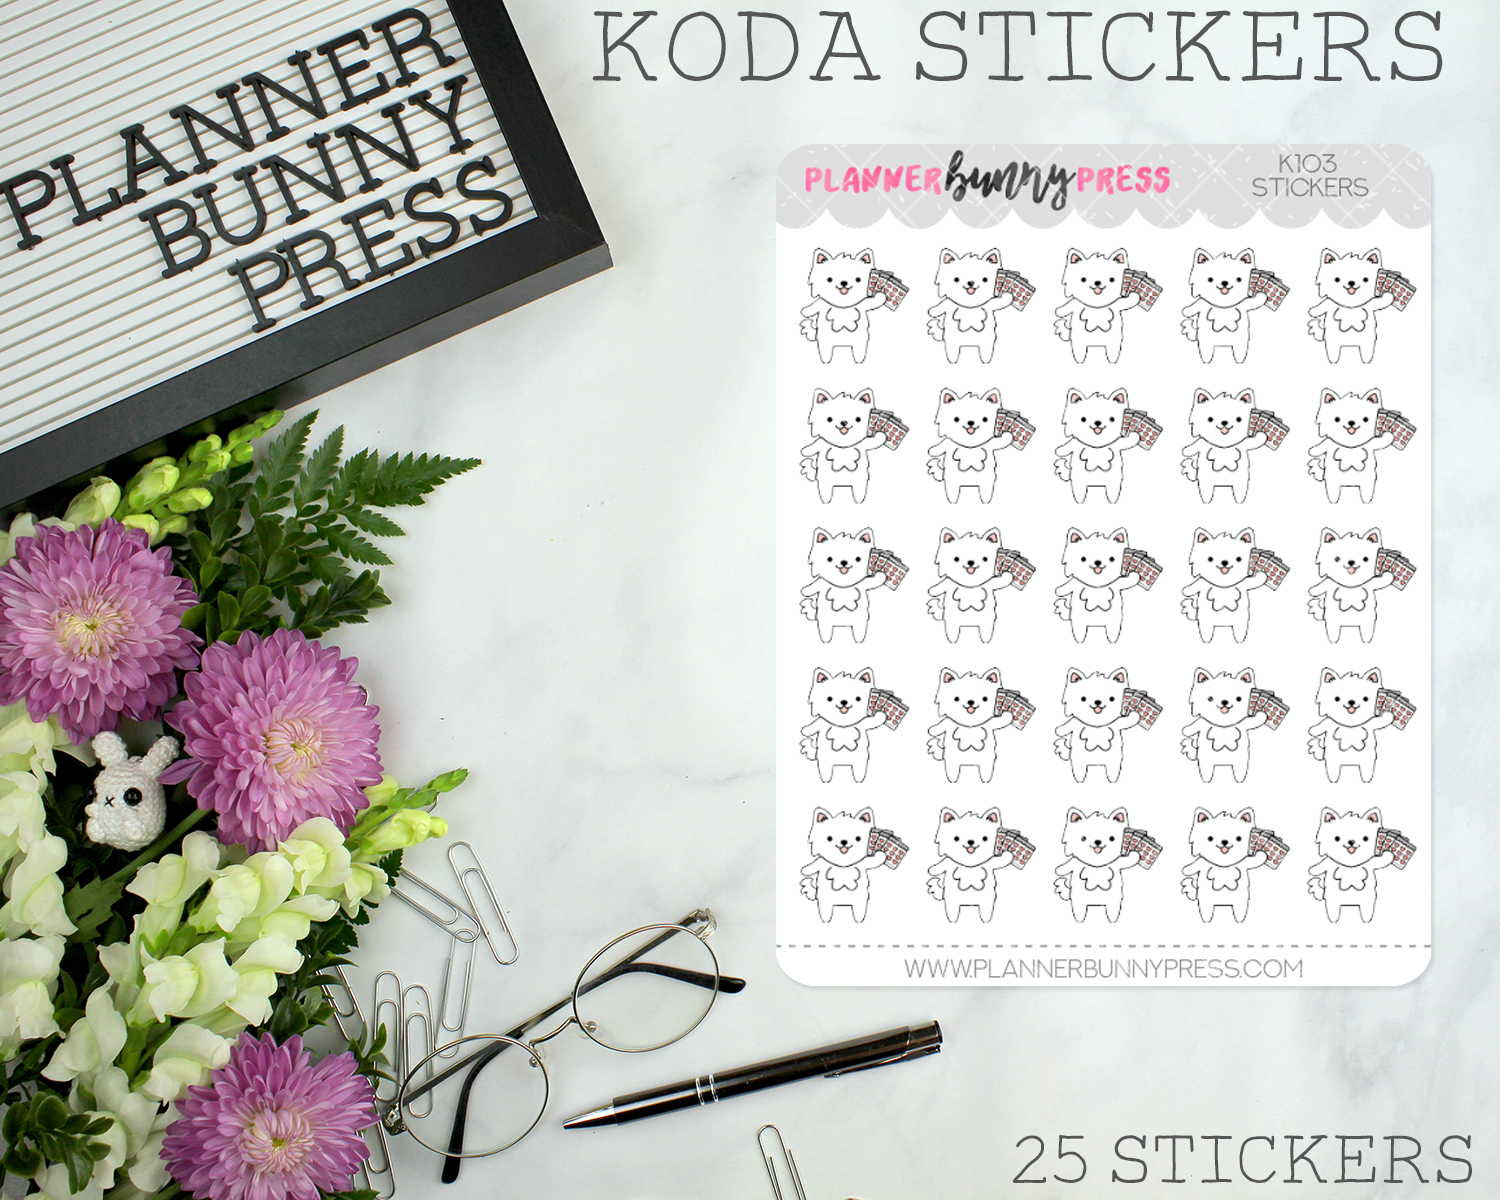 Stickers - Koda